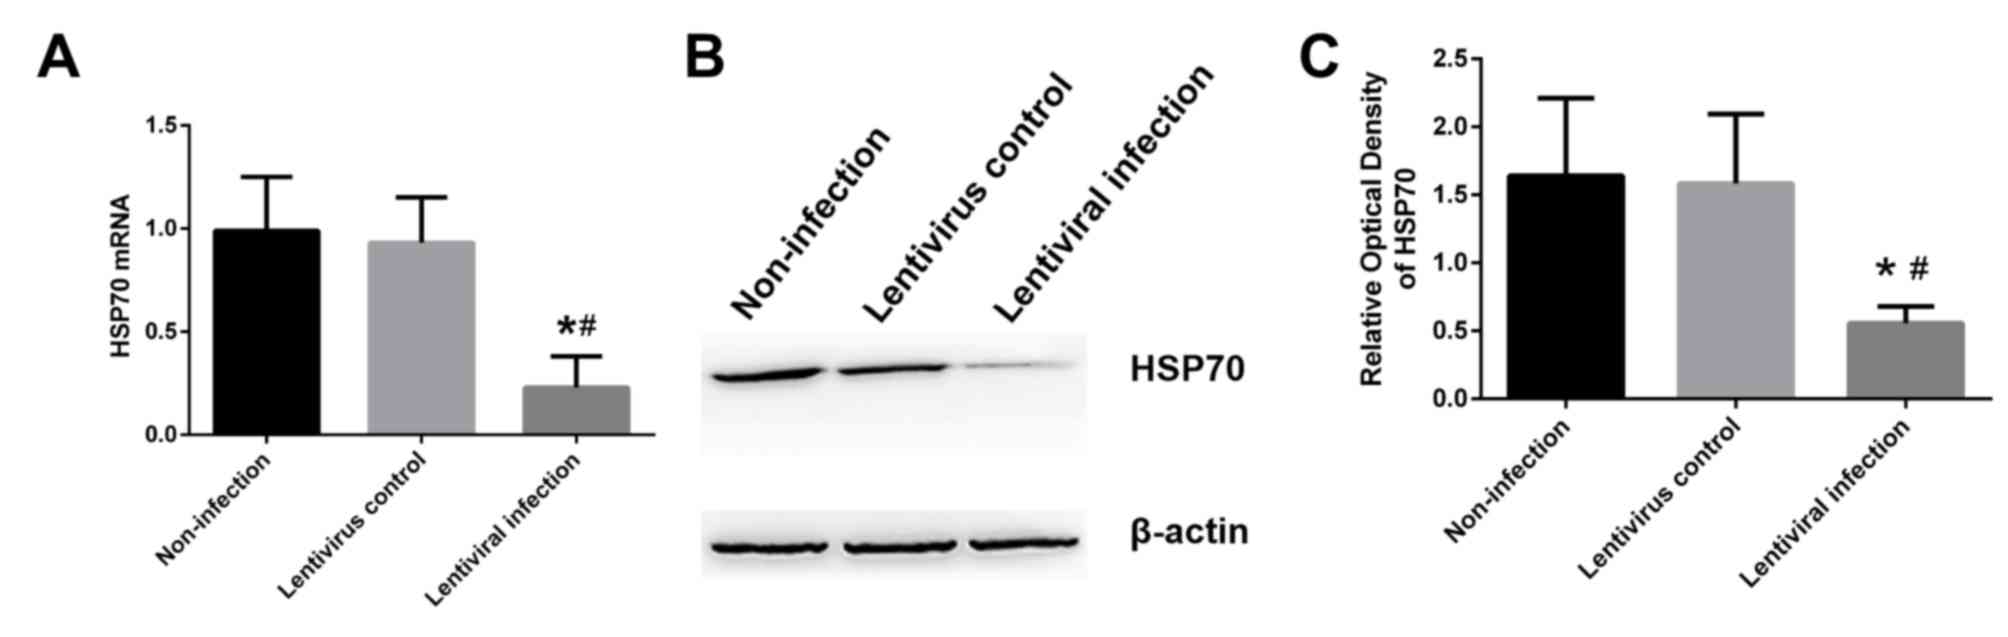 HSP70 silencing aggravates apoptosis induced by hypoxia